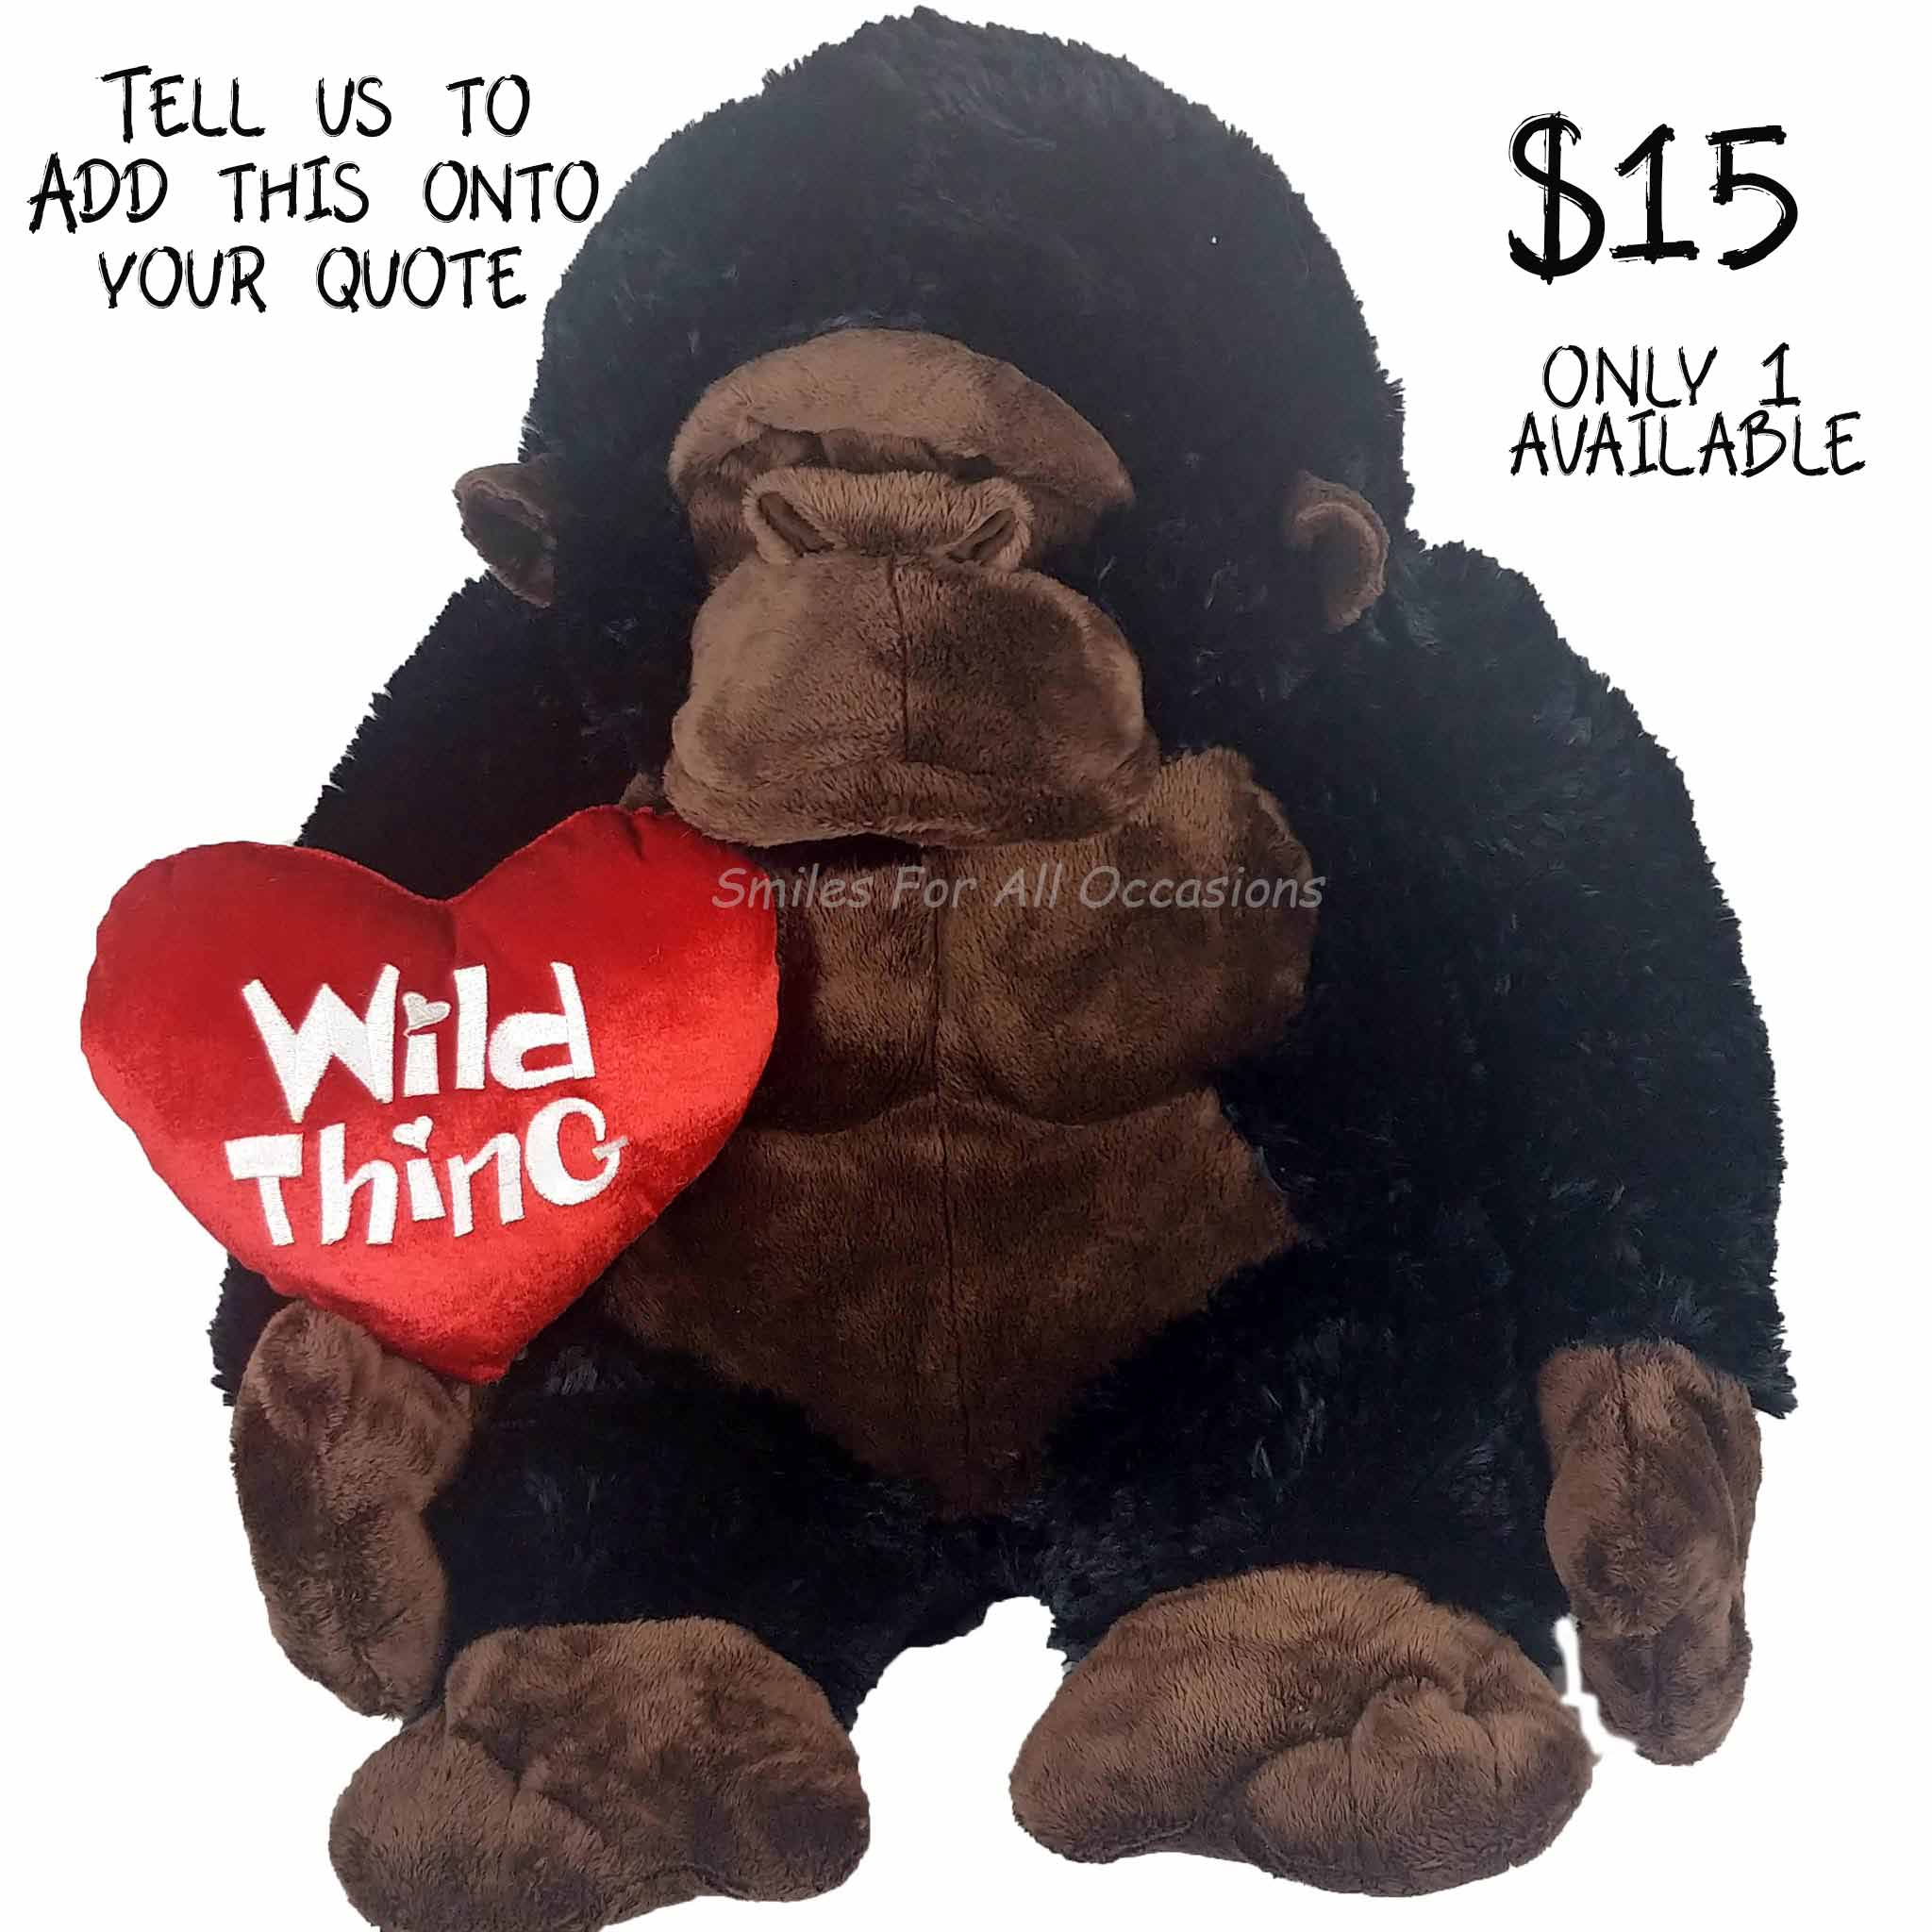 Plush Gorilla with Wild Thing Heart